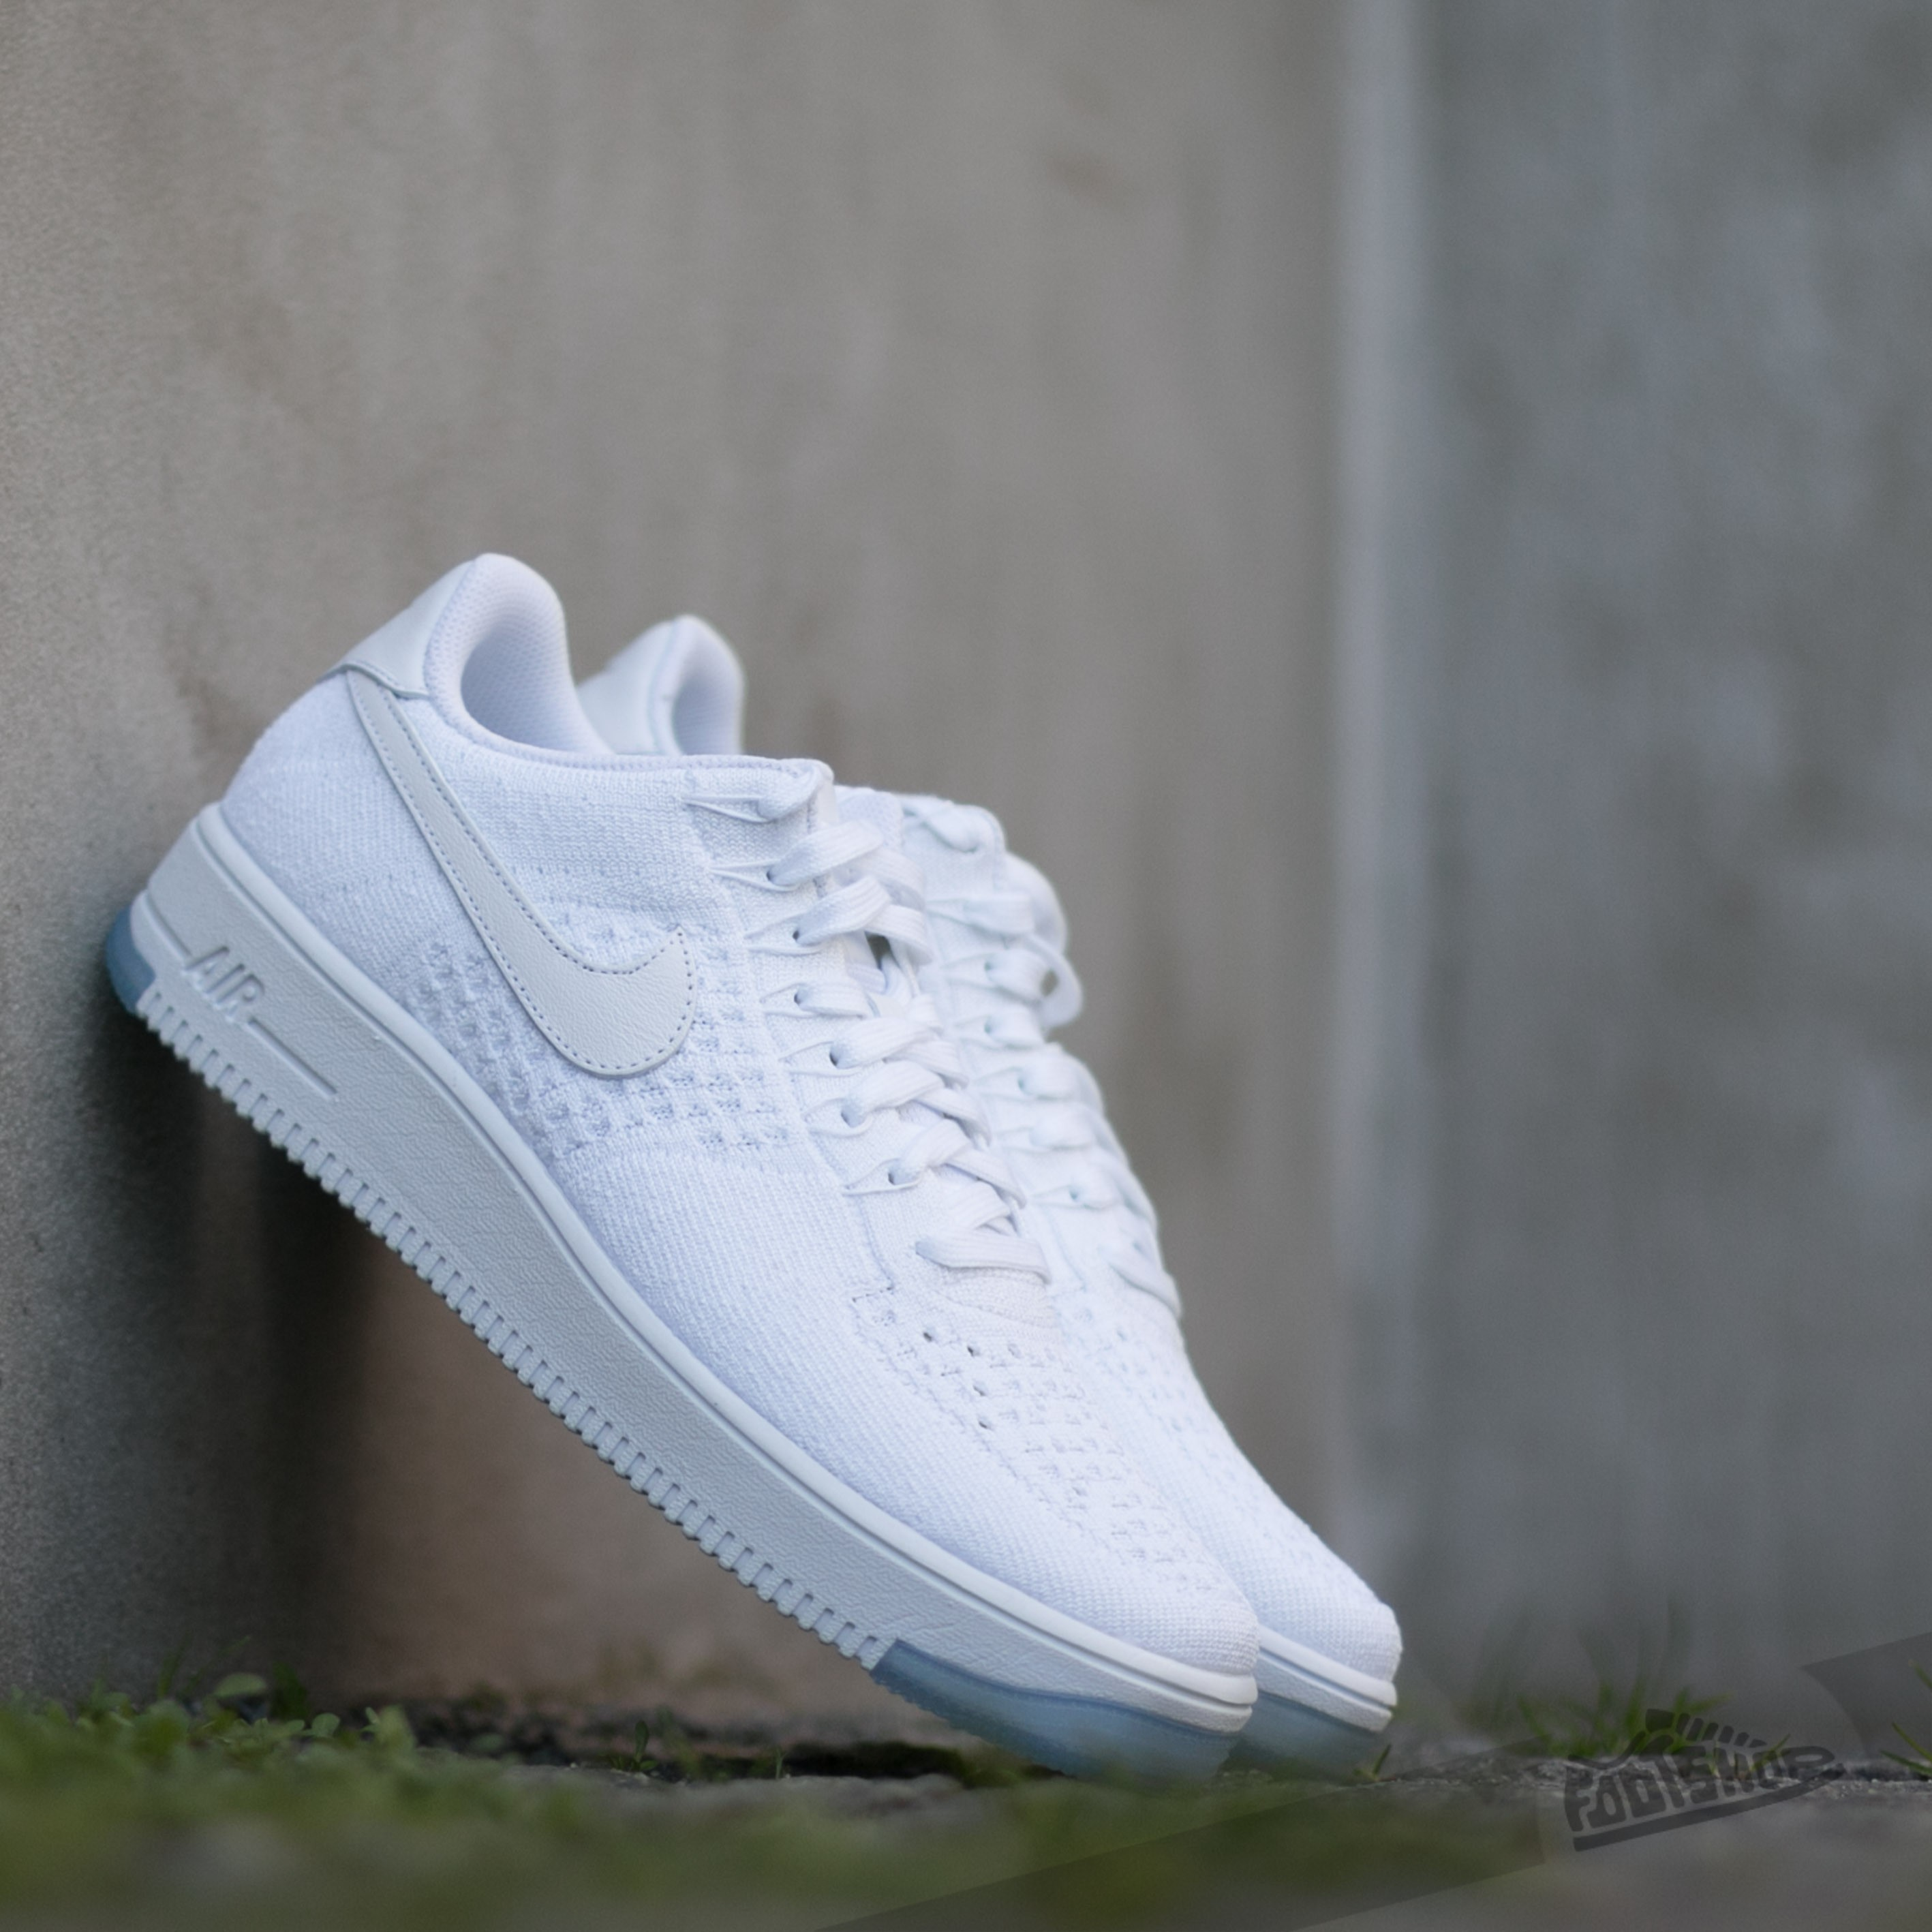 Nike Air Force 1 Ultra Flyknit Low White/ White- Ice | Footshop